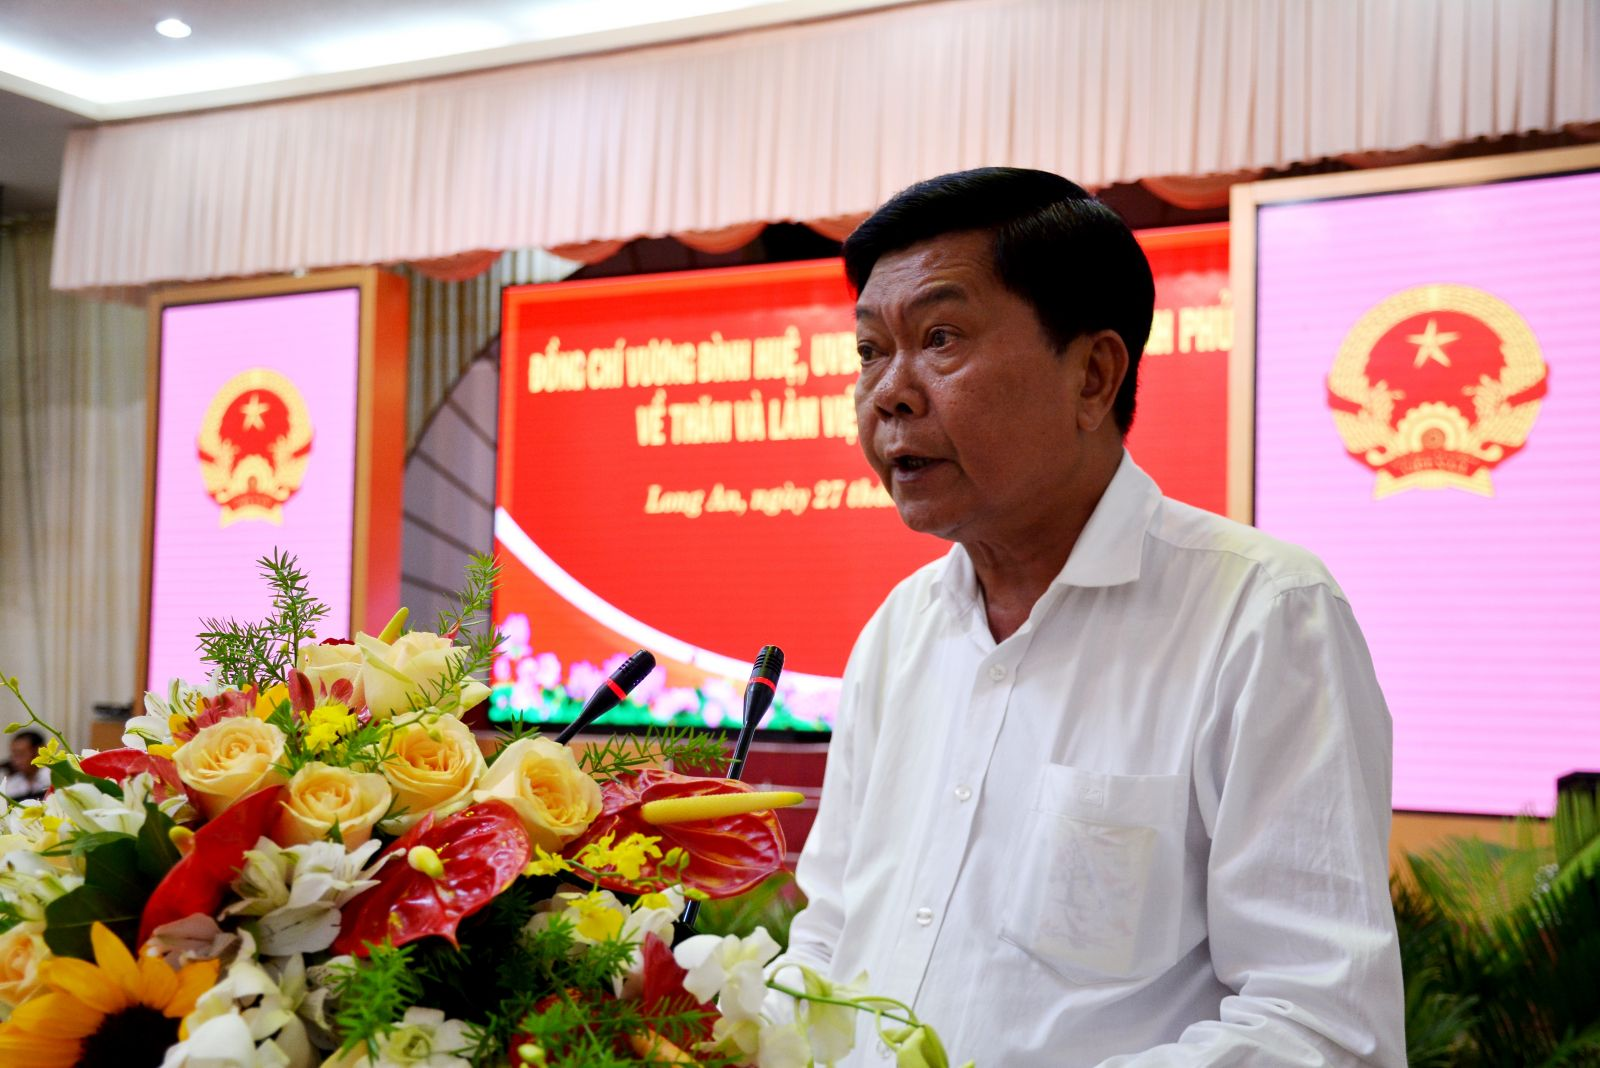 Chairman of the Provincial People's Committee - Tran Van Can raises many recommendations to the Deputy Prime Minister - Vuong Dinh Hue